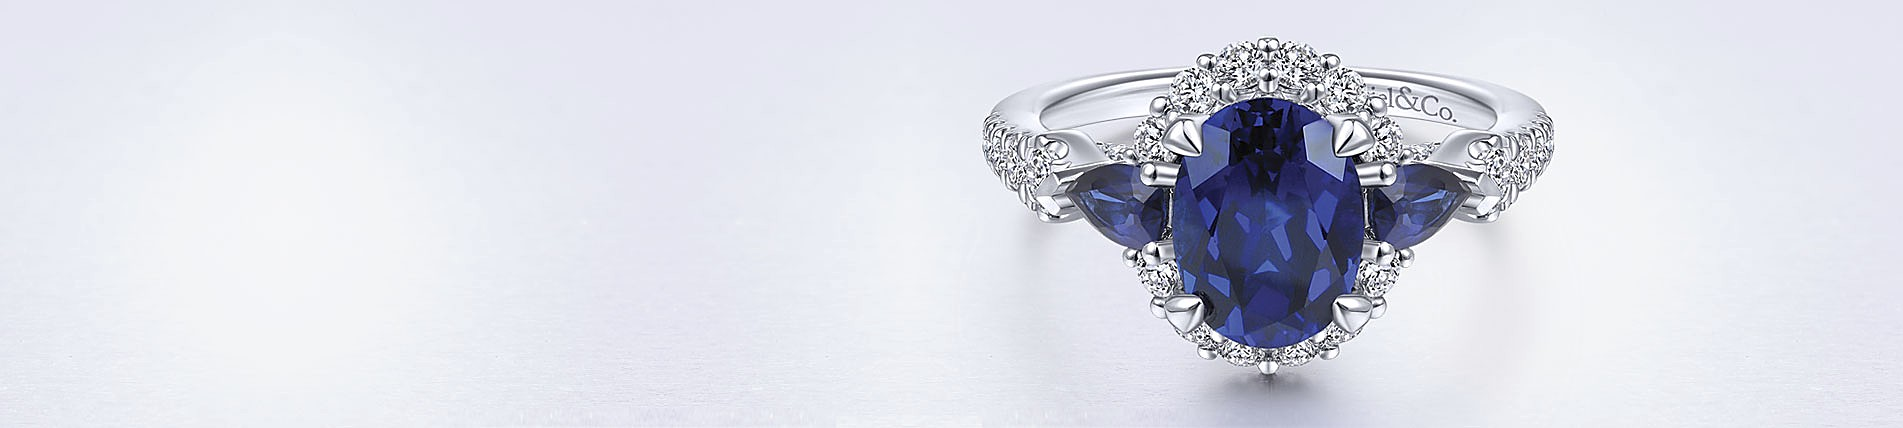 stone ring engagement rings wedding settings edwardian blue